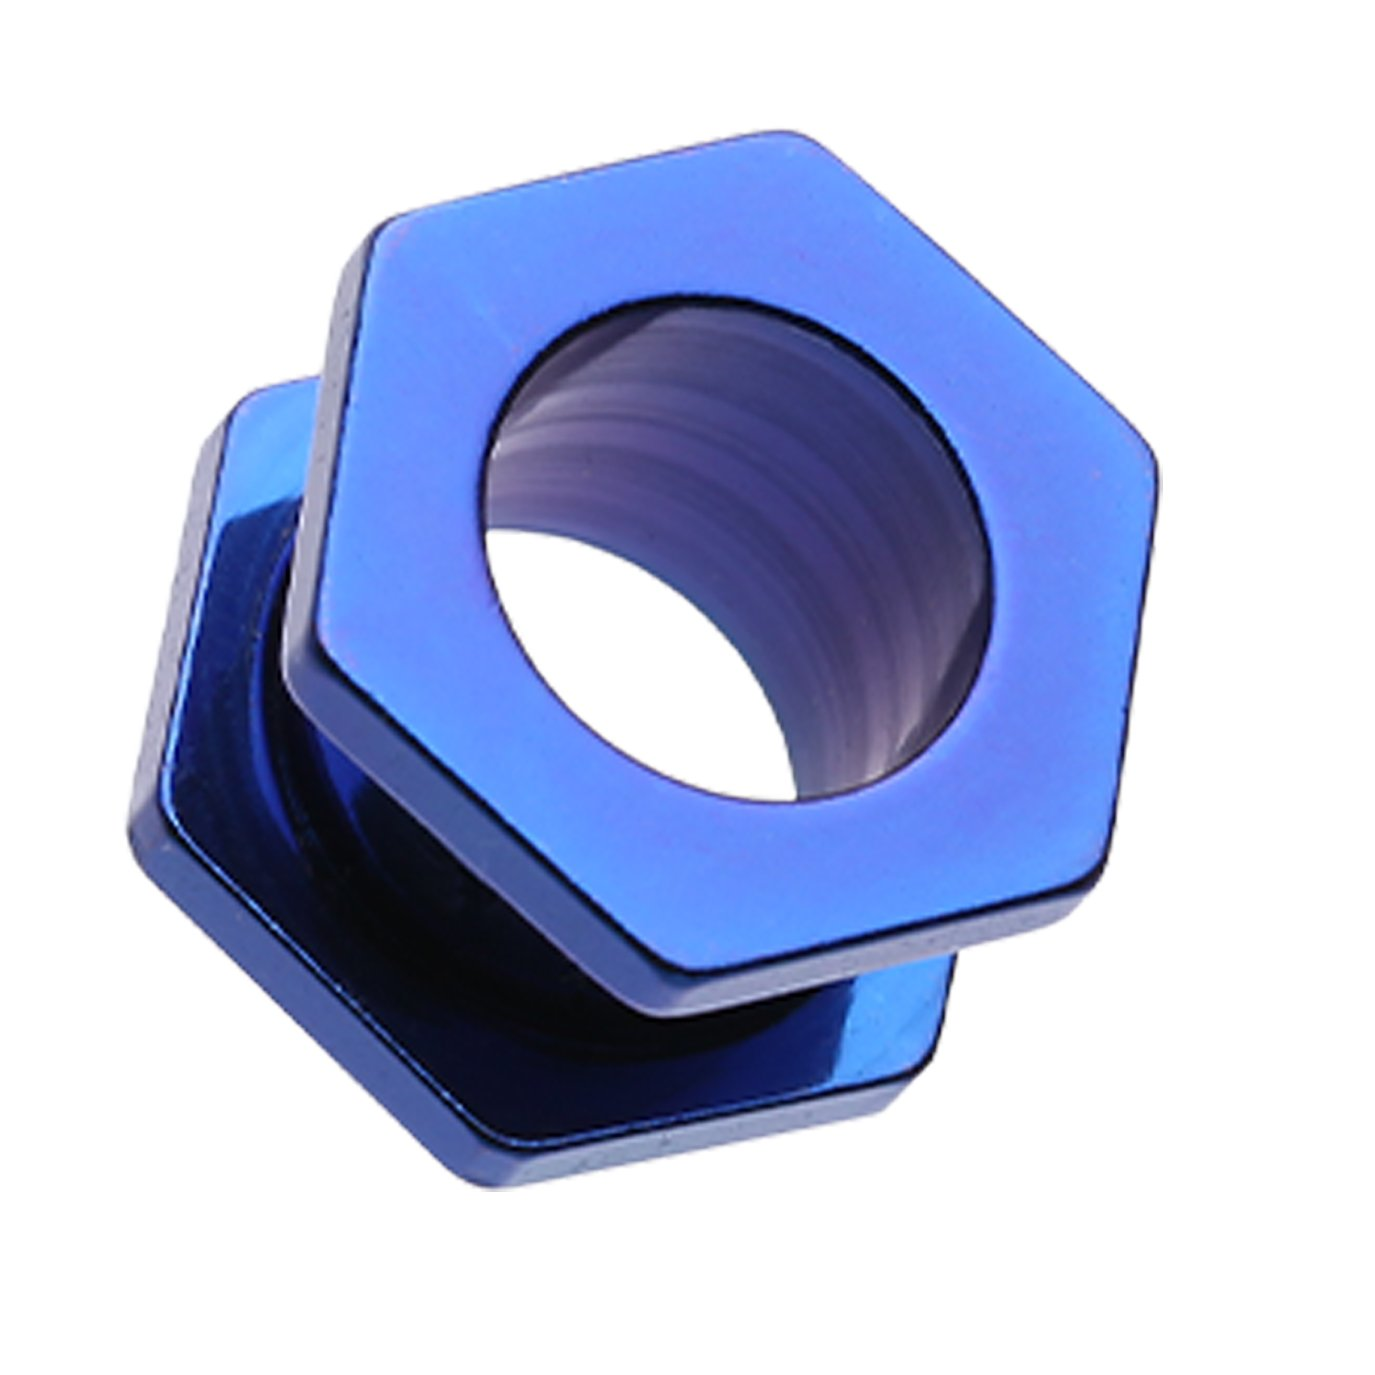 Colored IP Coated Hexa Bolt Screw-Fit Ear Tunnel Plug Blue